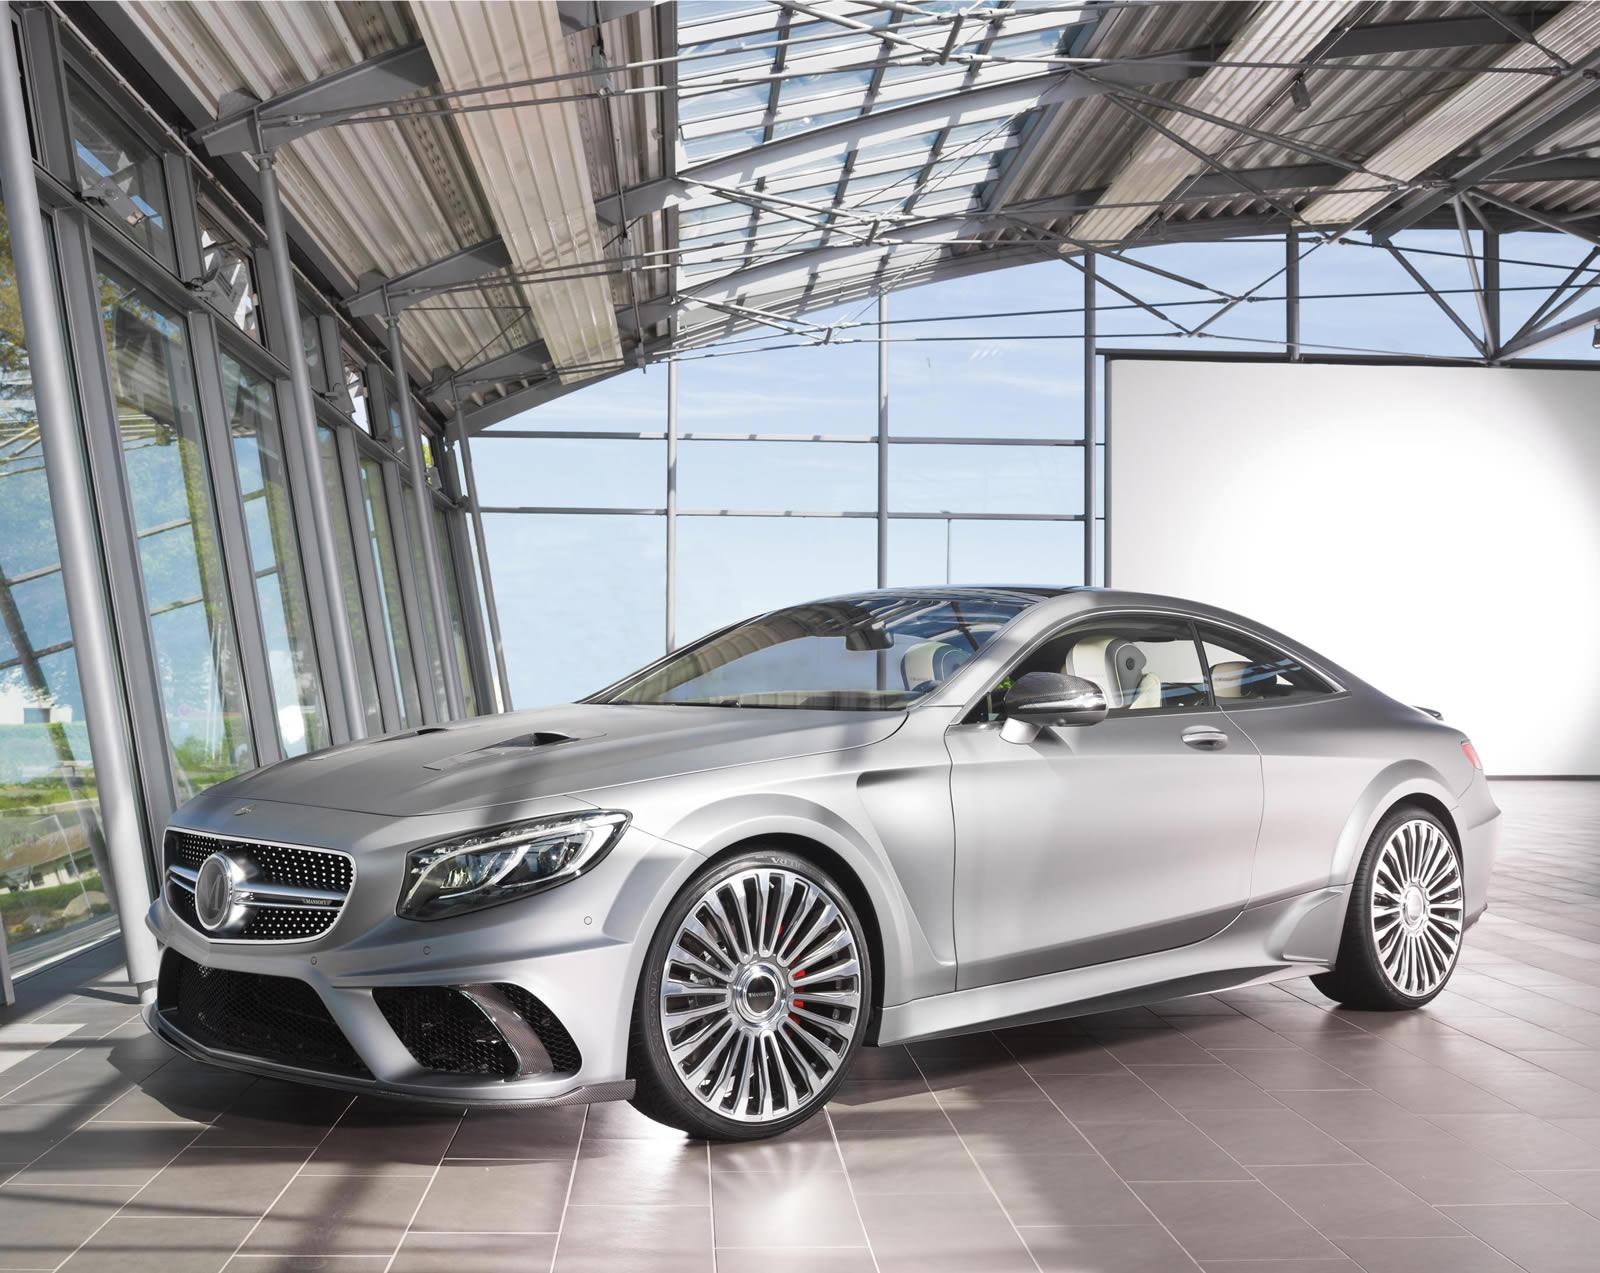 Mercedes-S63-AMG-Coupe-Mansory-900-001.jpg